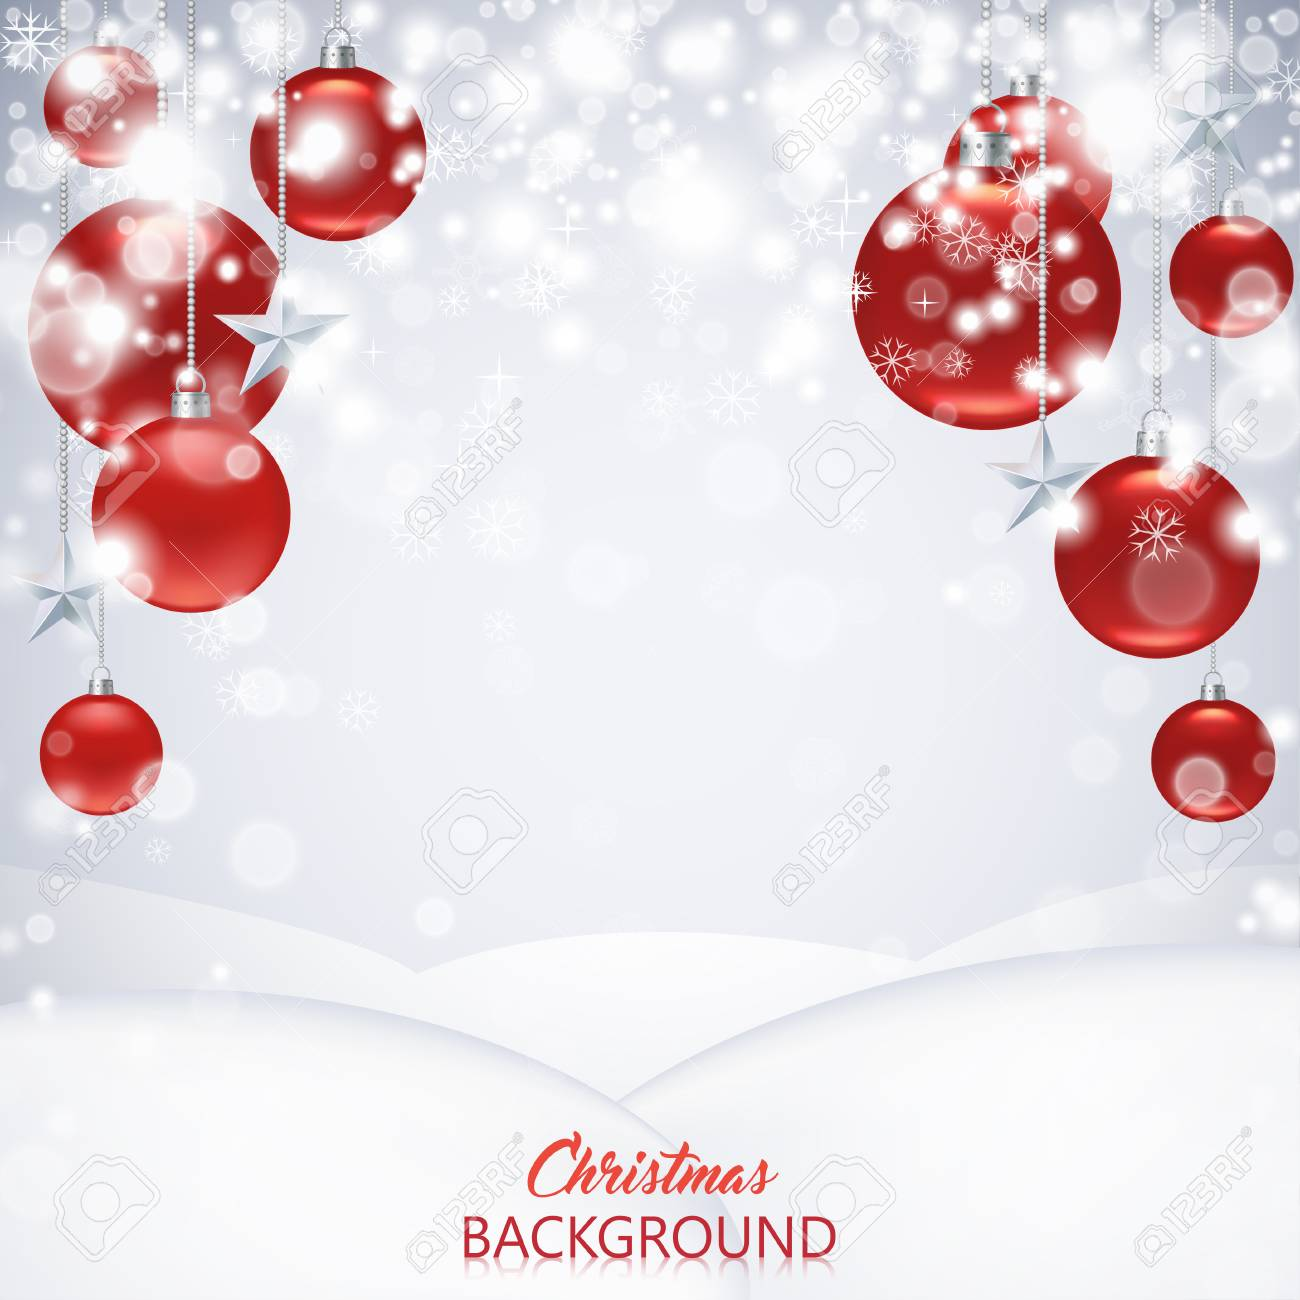 Elegant Christmas Background Images.Elegant Christmas Background With Red Frosted And Glossy Christmas